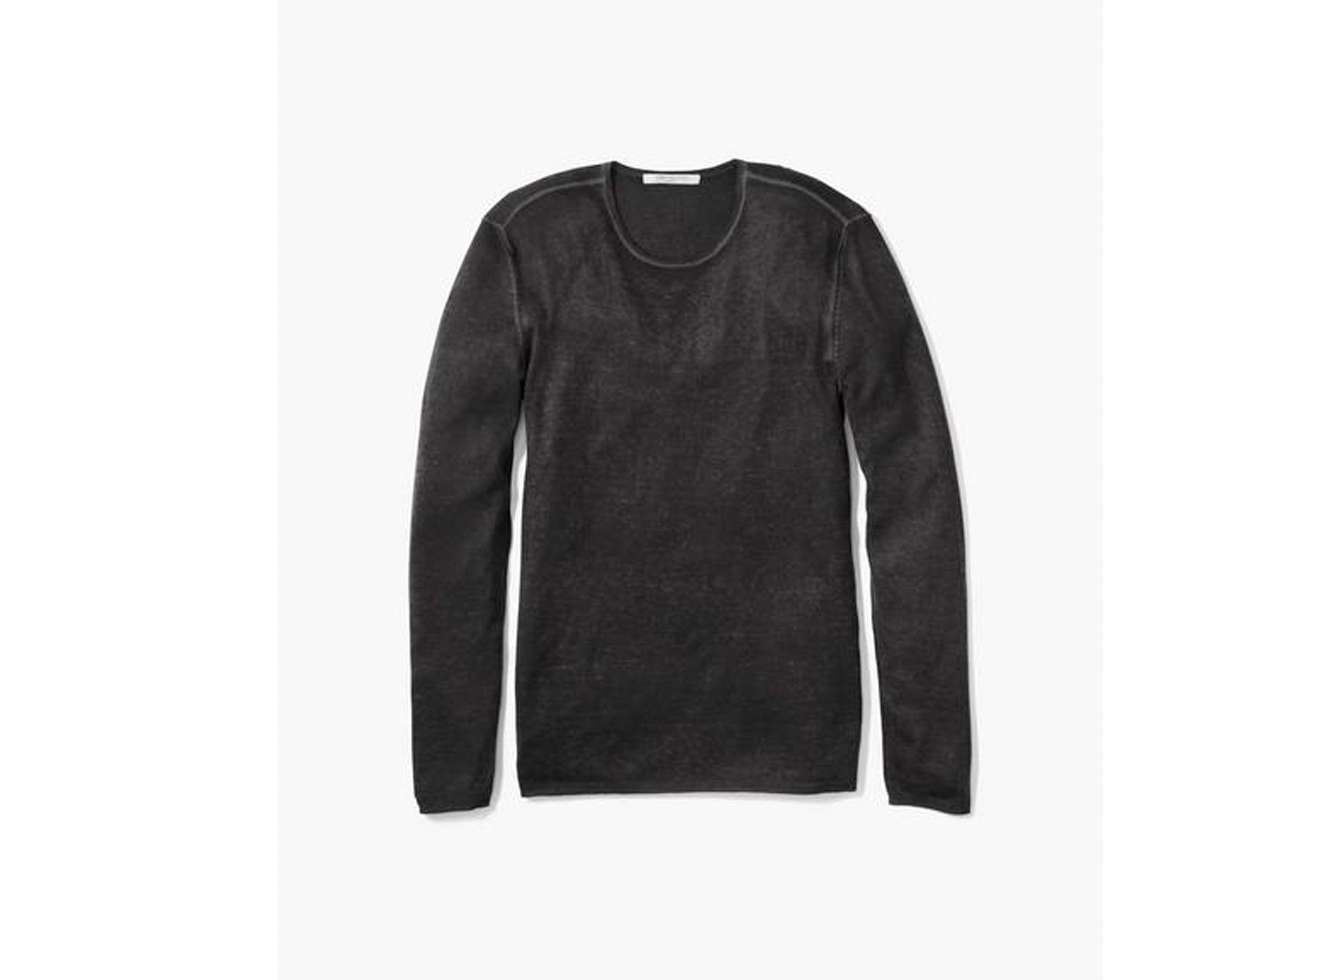 Silk Cashmere Crew sweater by John Varvatos